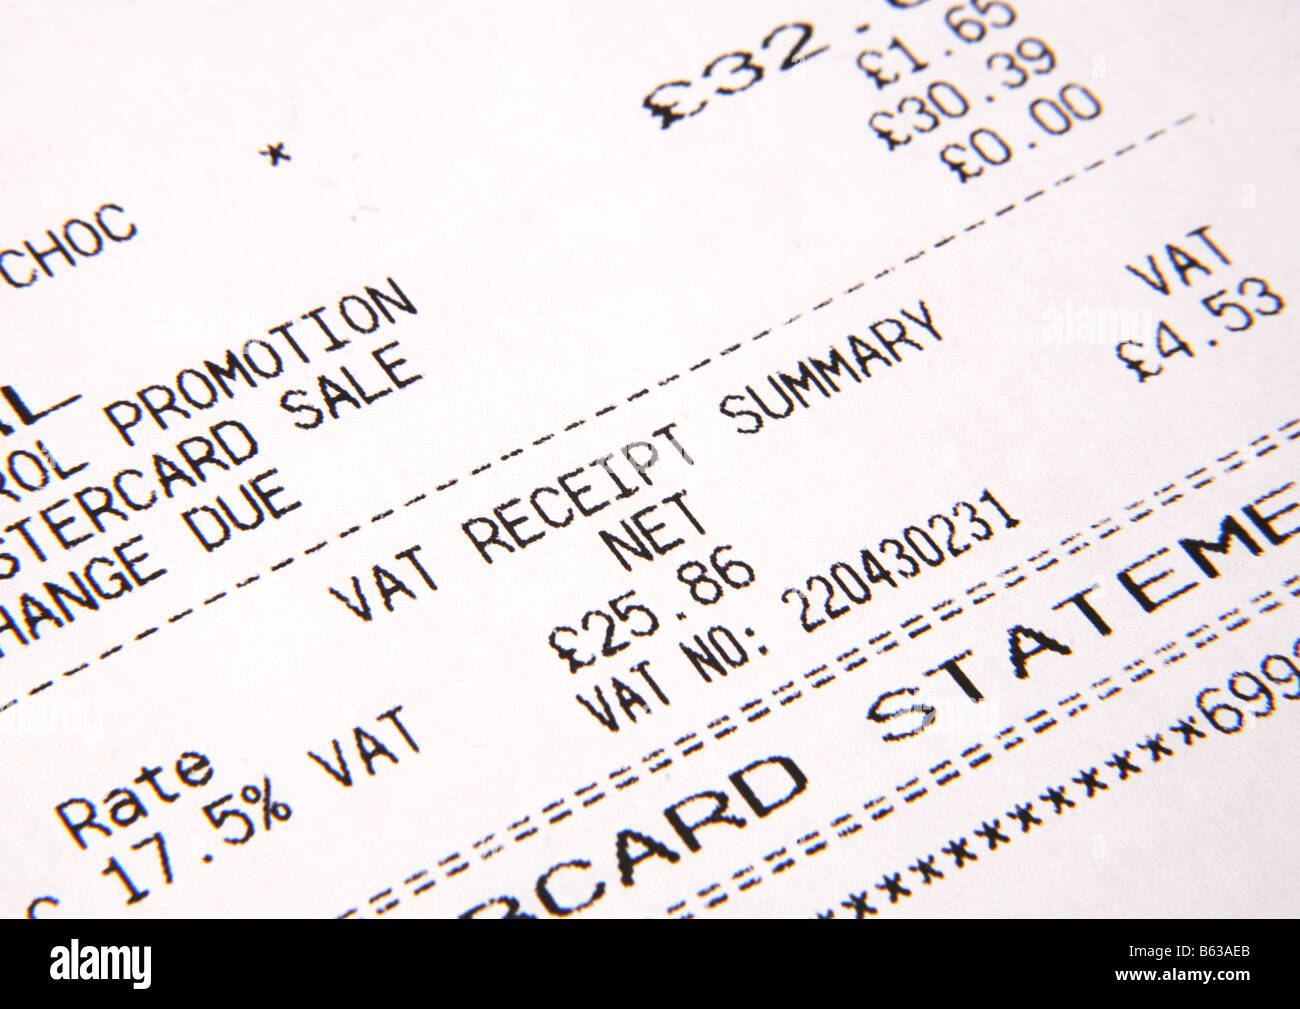 What is the value added tax